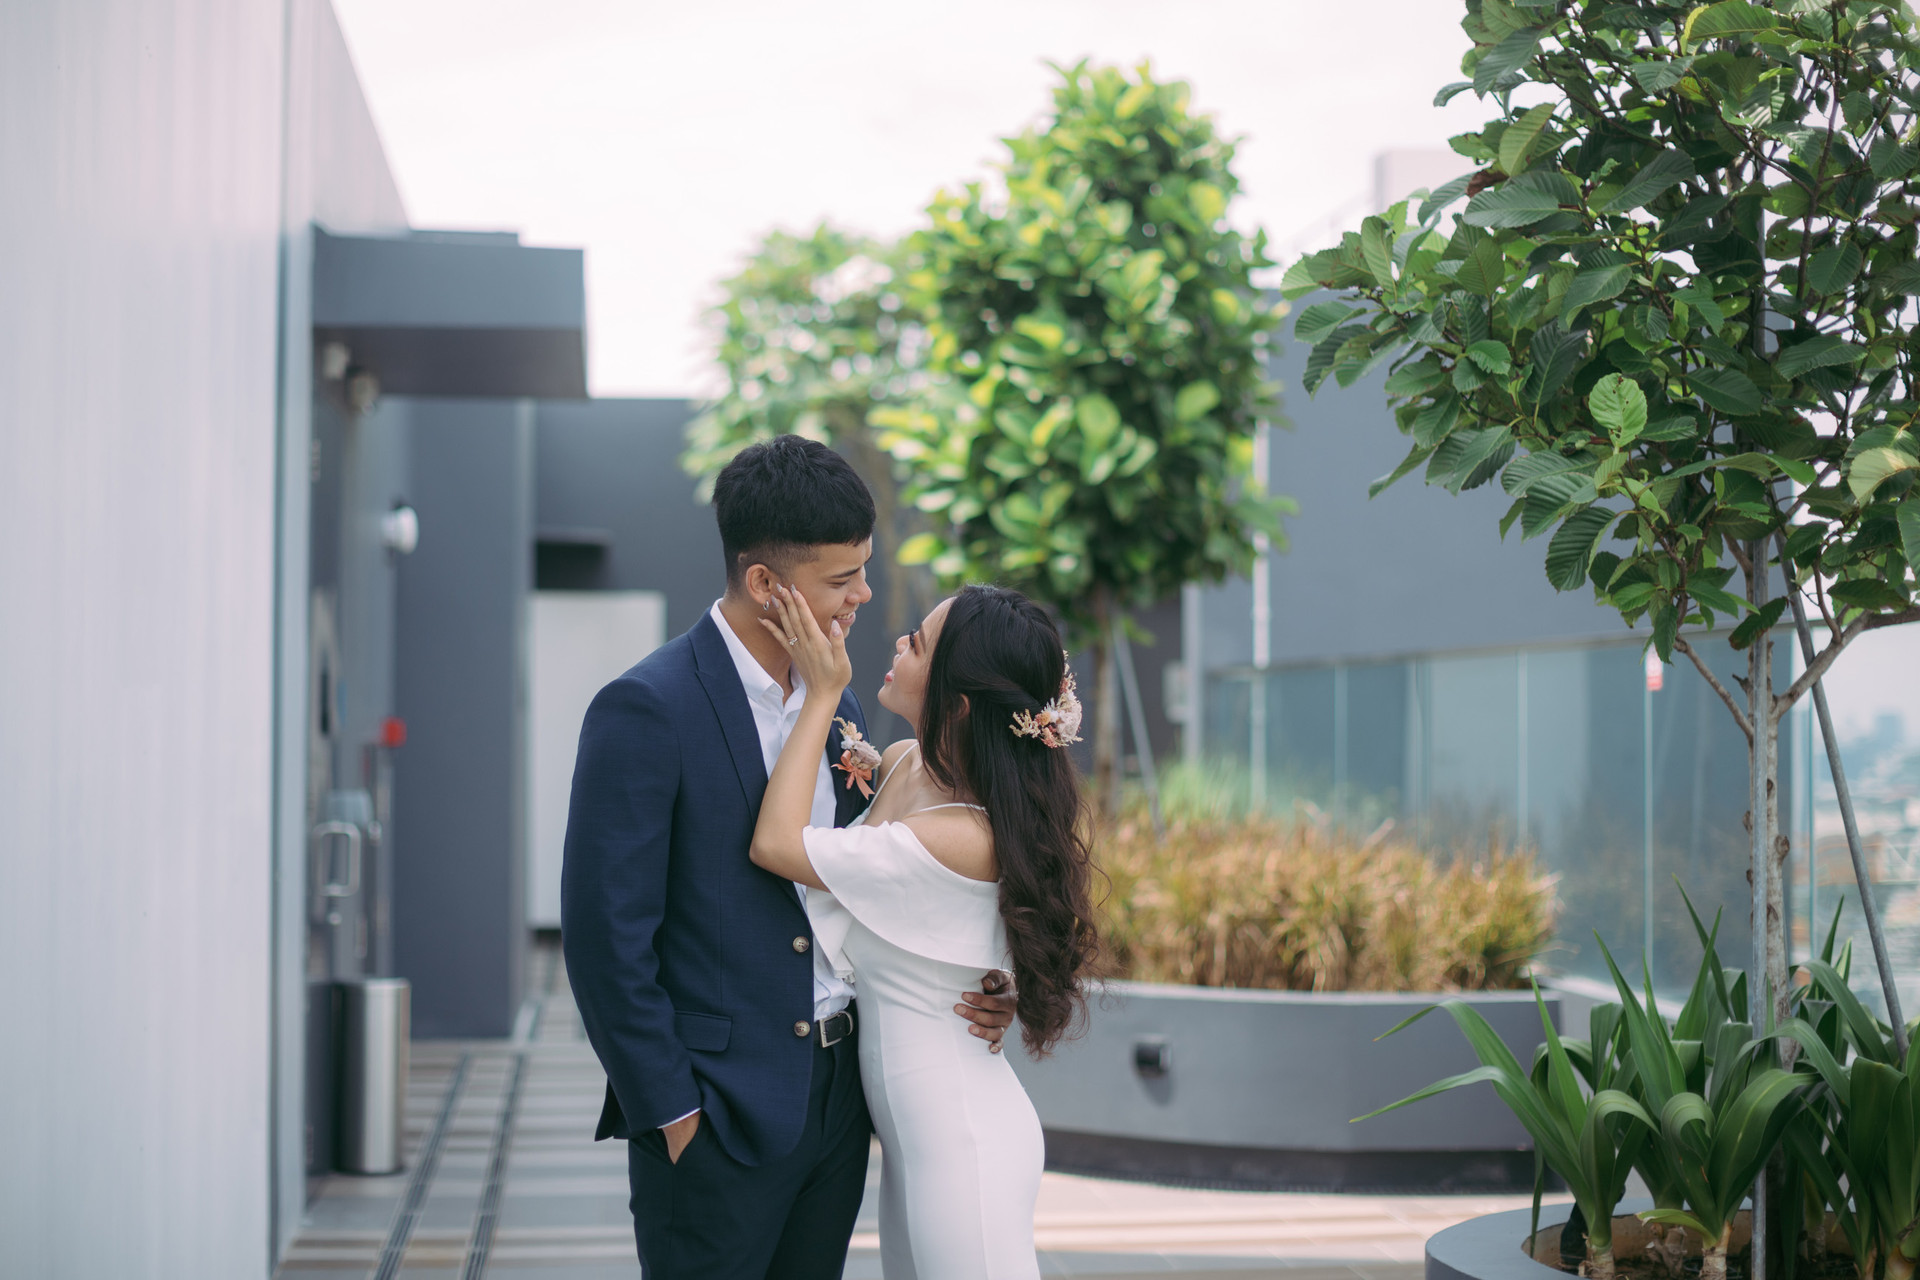 boonheng and jessica-55.jpg